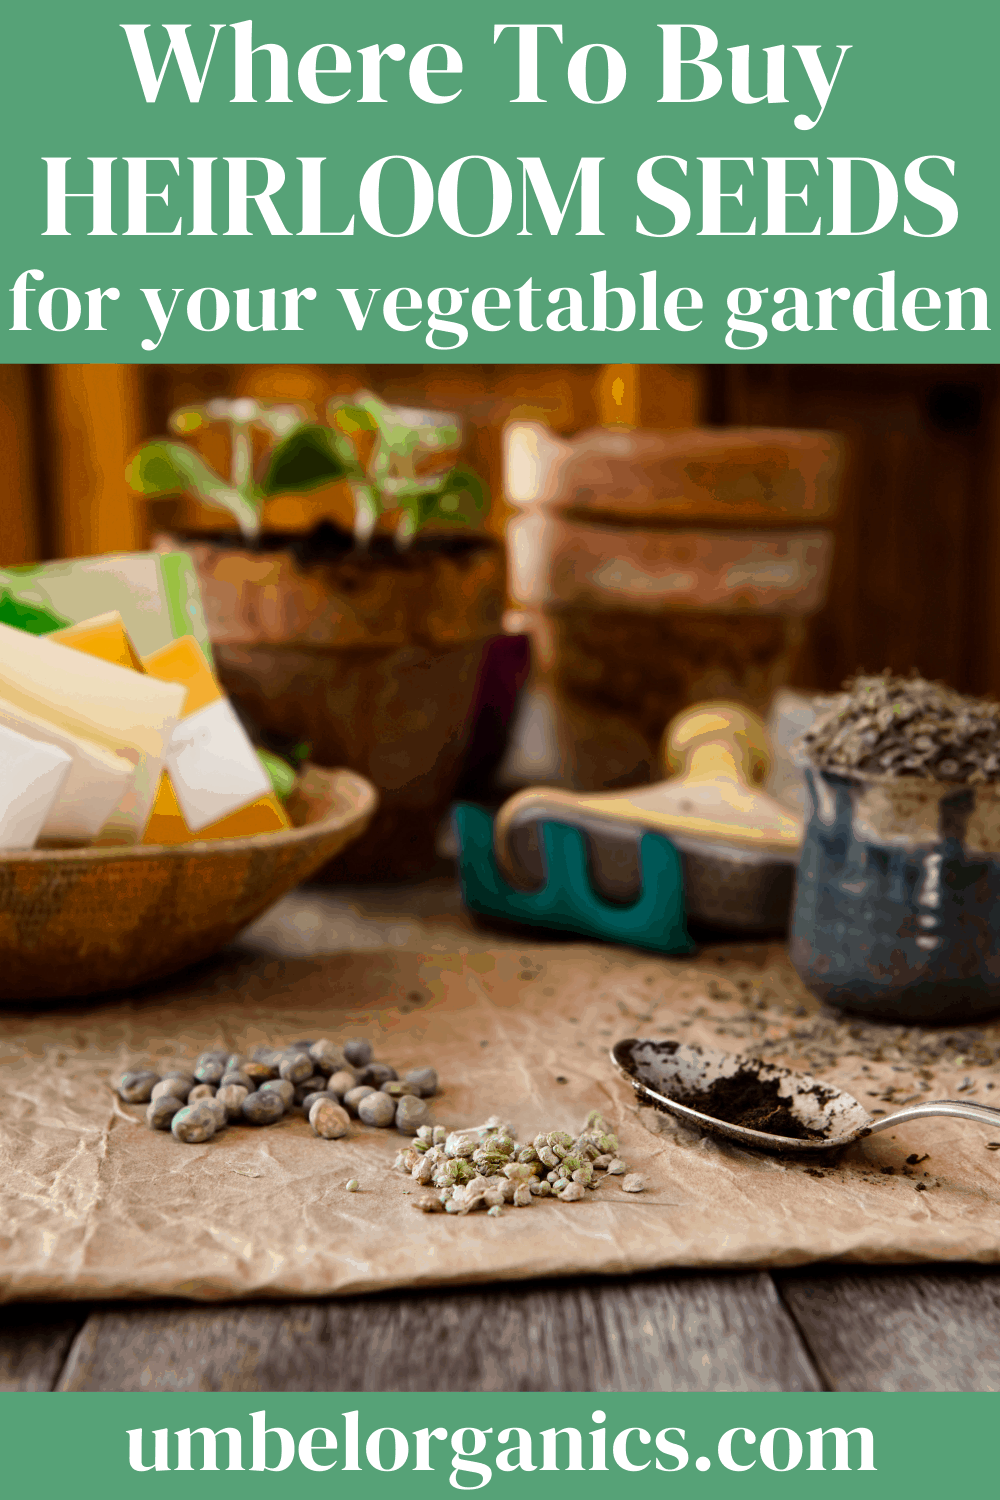 Vegetable seeds on brown paper bag with small green hoe and vegetable seed packets in wooden bowl